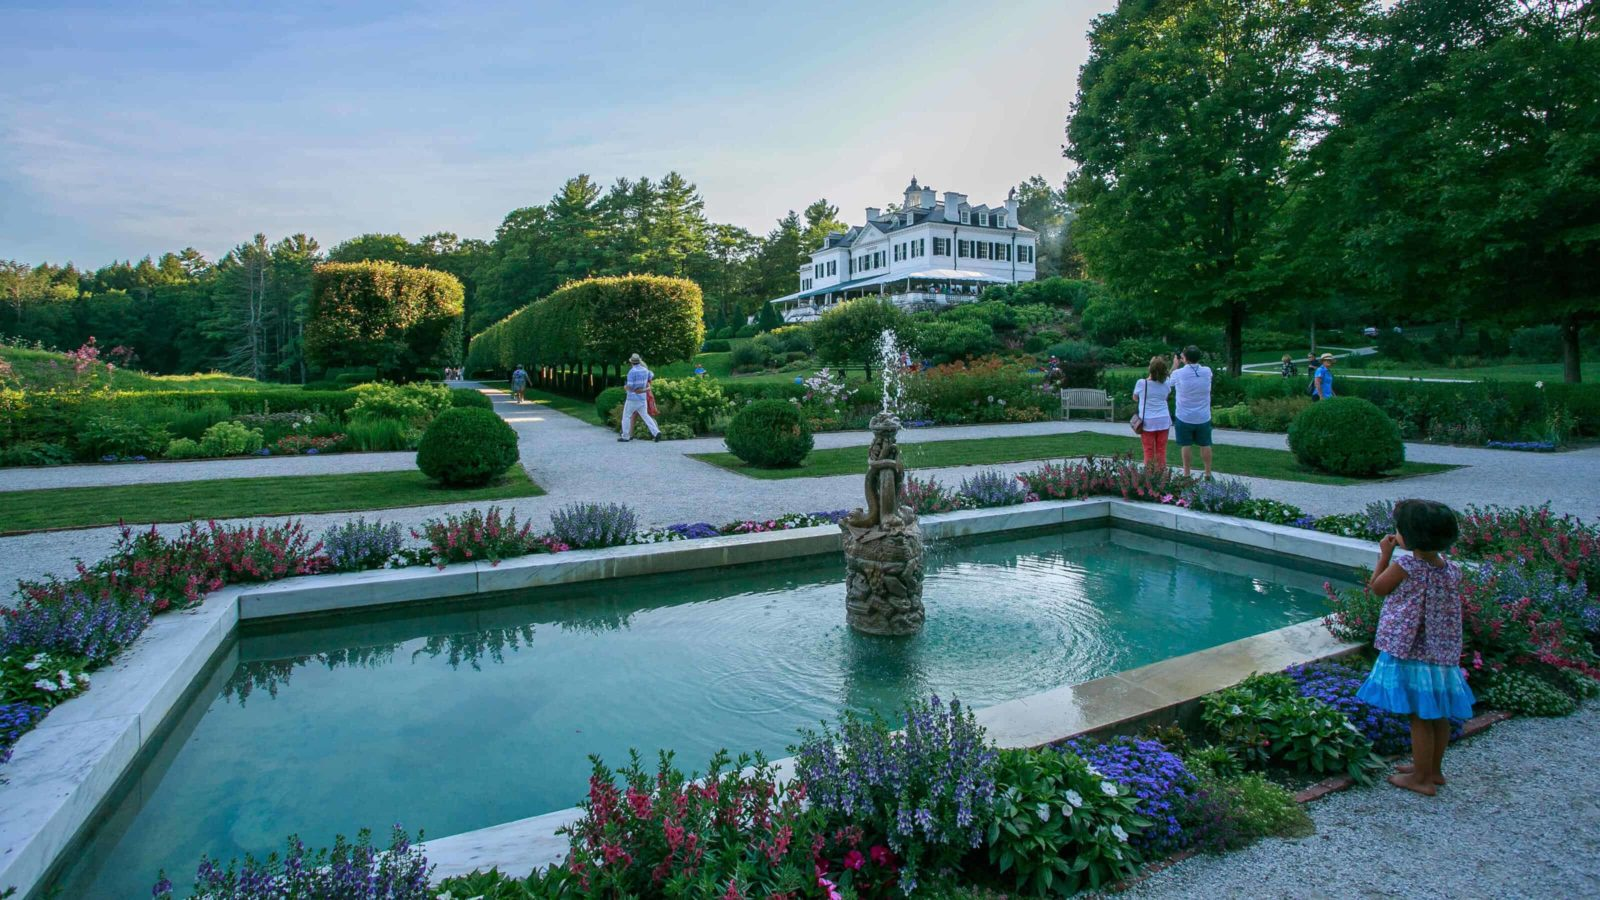 Summer visitors walk through the gardens at The Mount, writer and novelist Edith Wharton's home in Lenox, in the Berkshires.